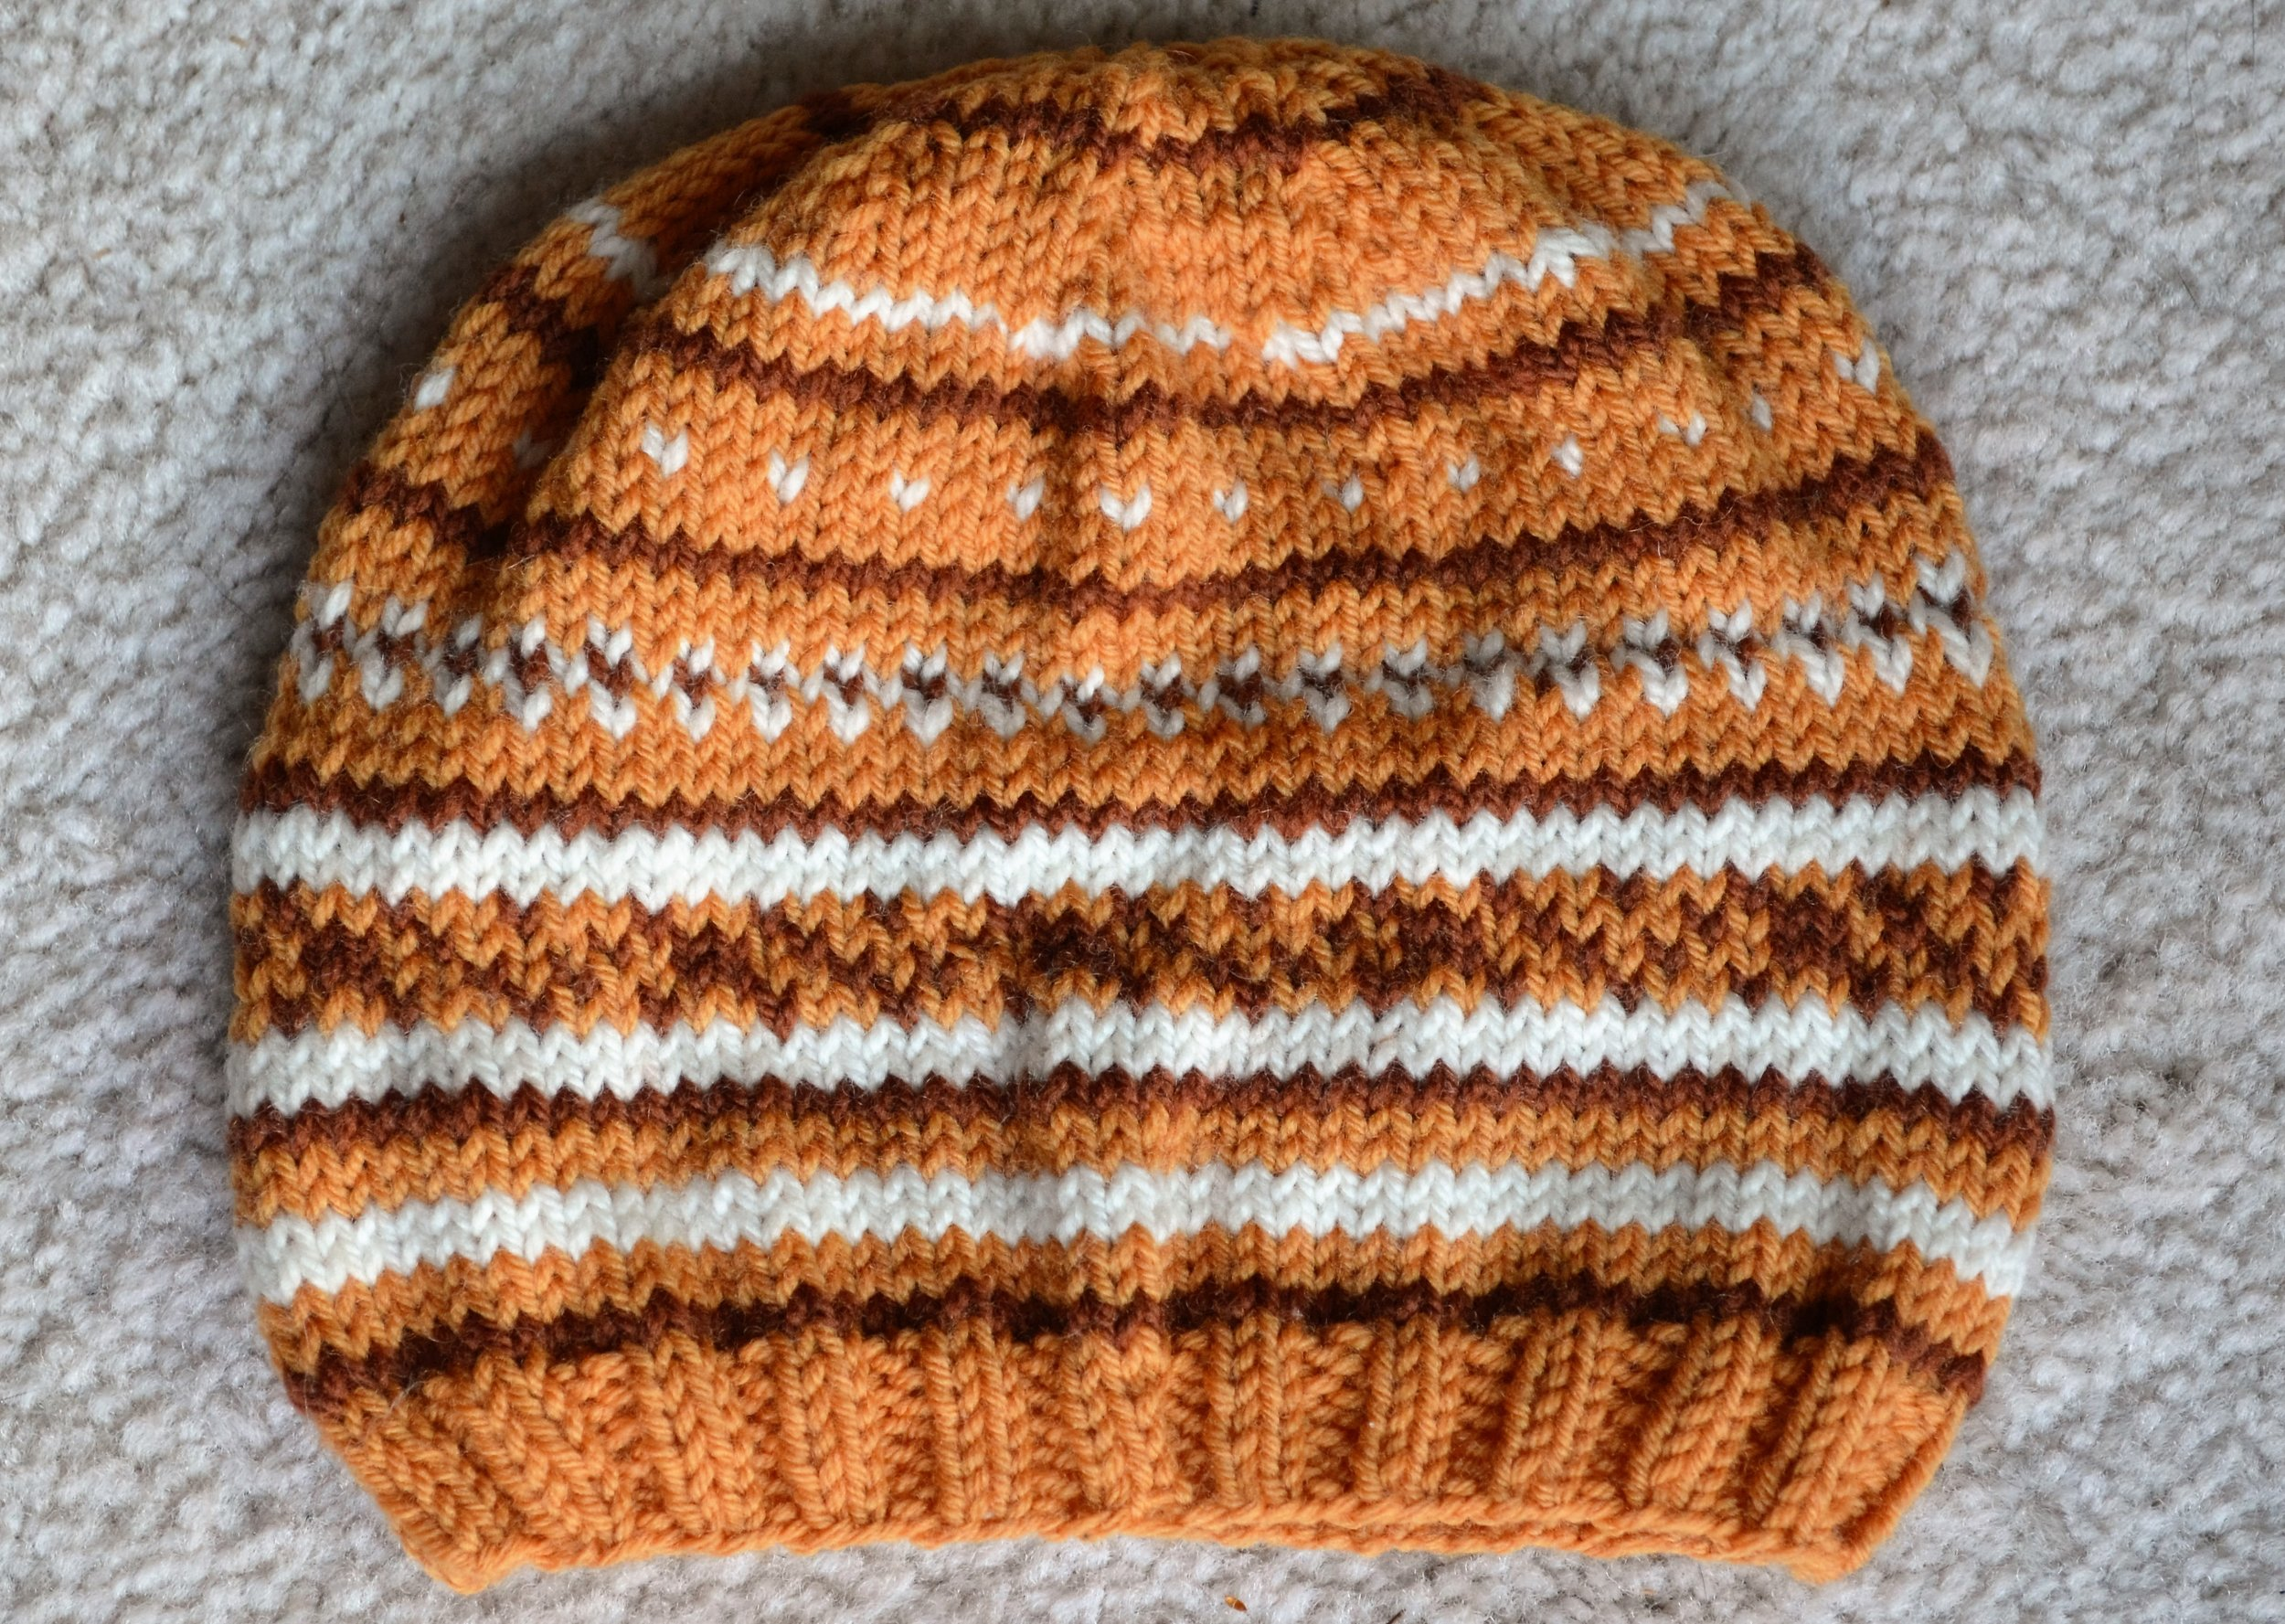 Knit baby hat by Warp or Weft